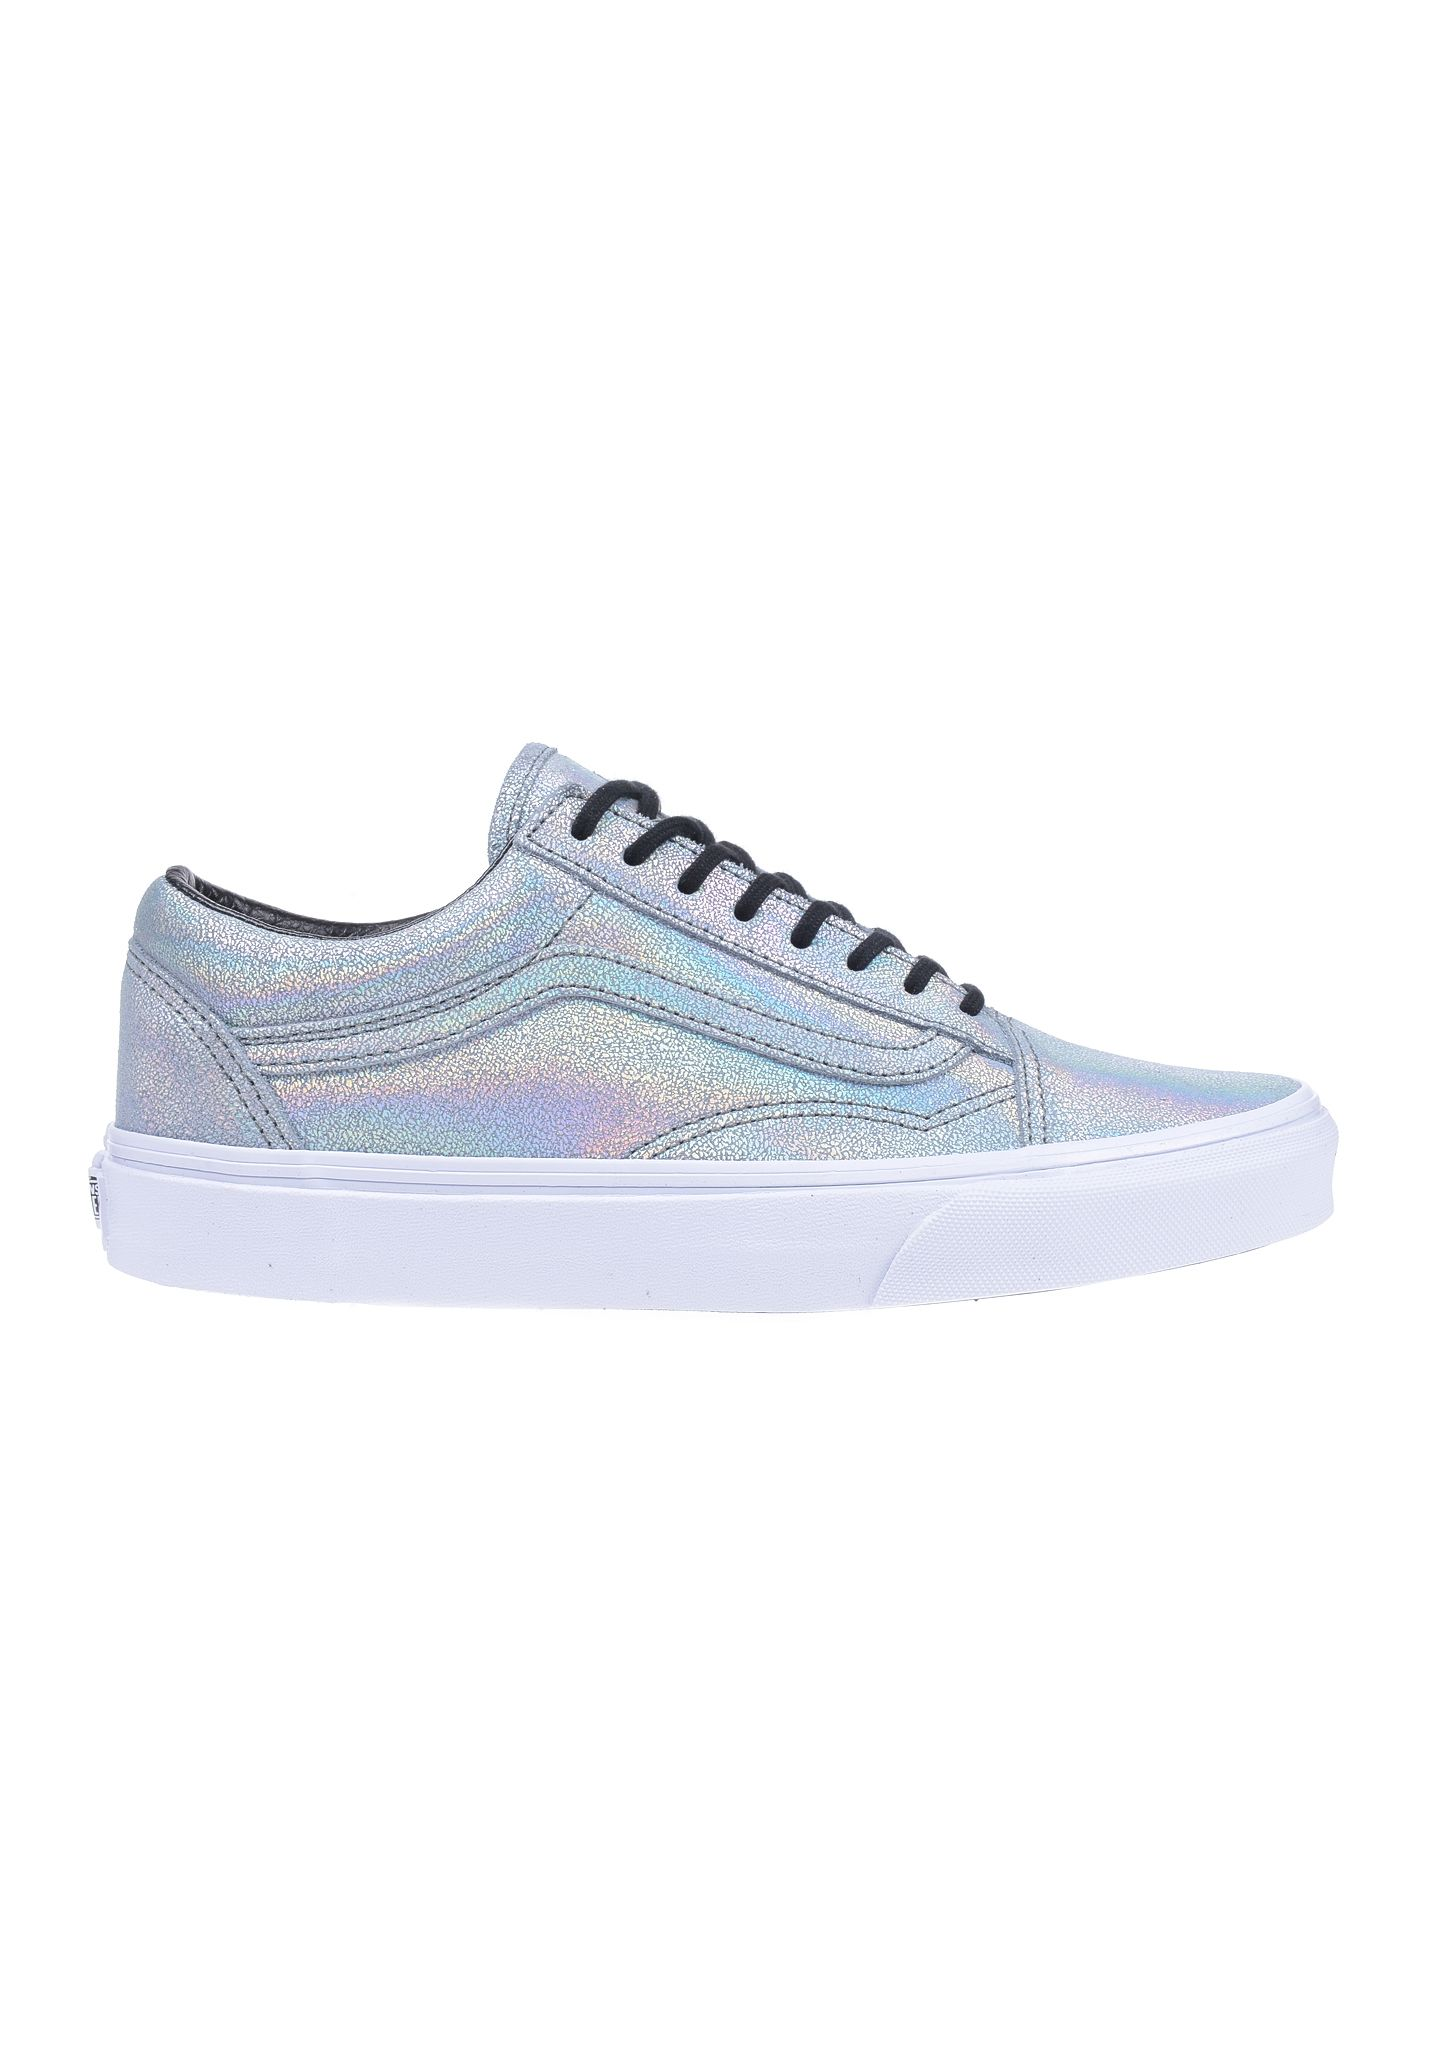 Vans Old Skool Argent